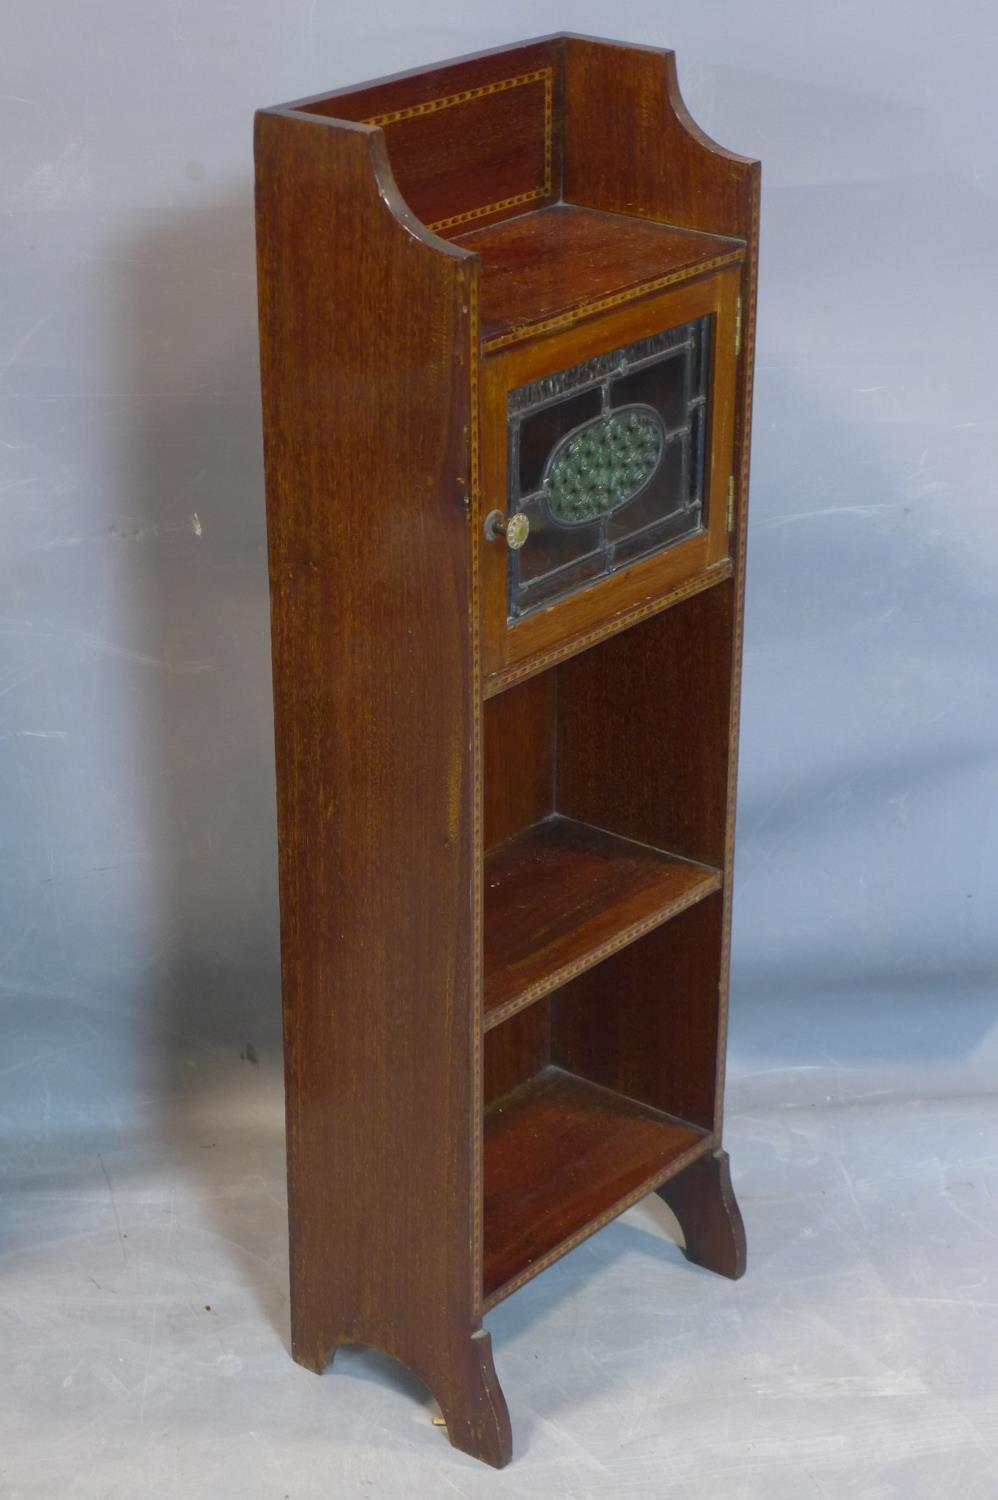 Lot 249 - A small Arts and Crafts mahogany and inlaid narrow side cabinet, with single leaded glass door above